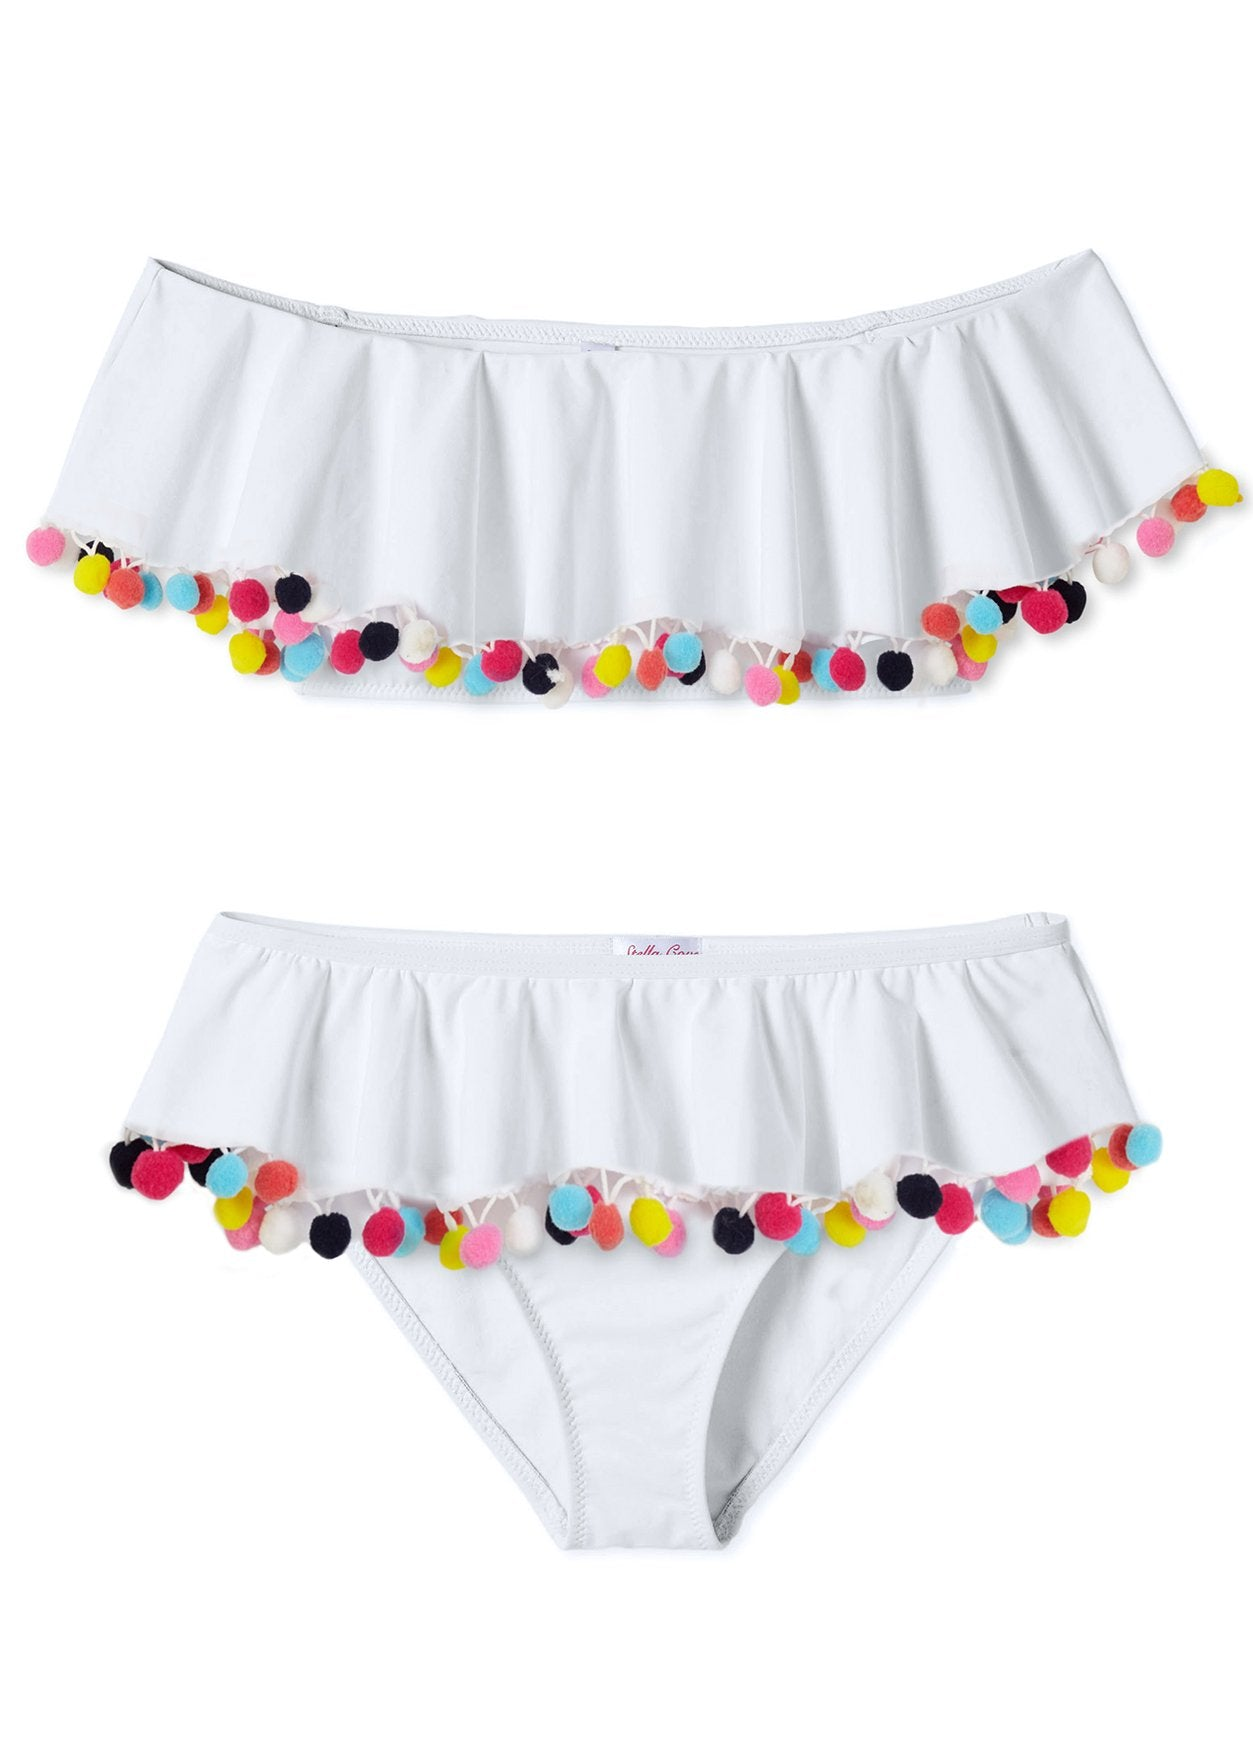 White Draped Bikini with Multicolor Pom Poms